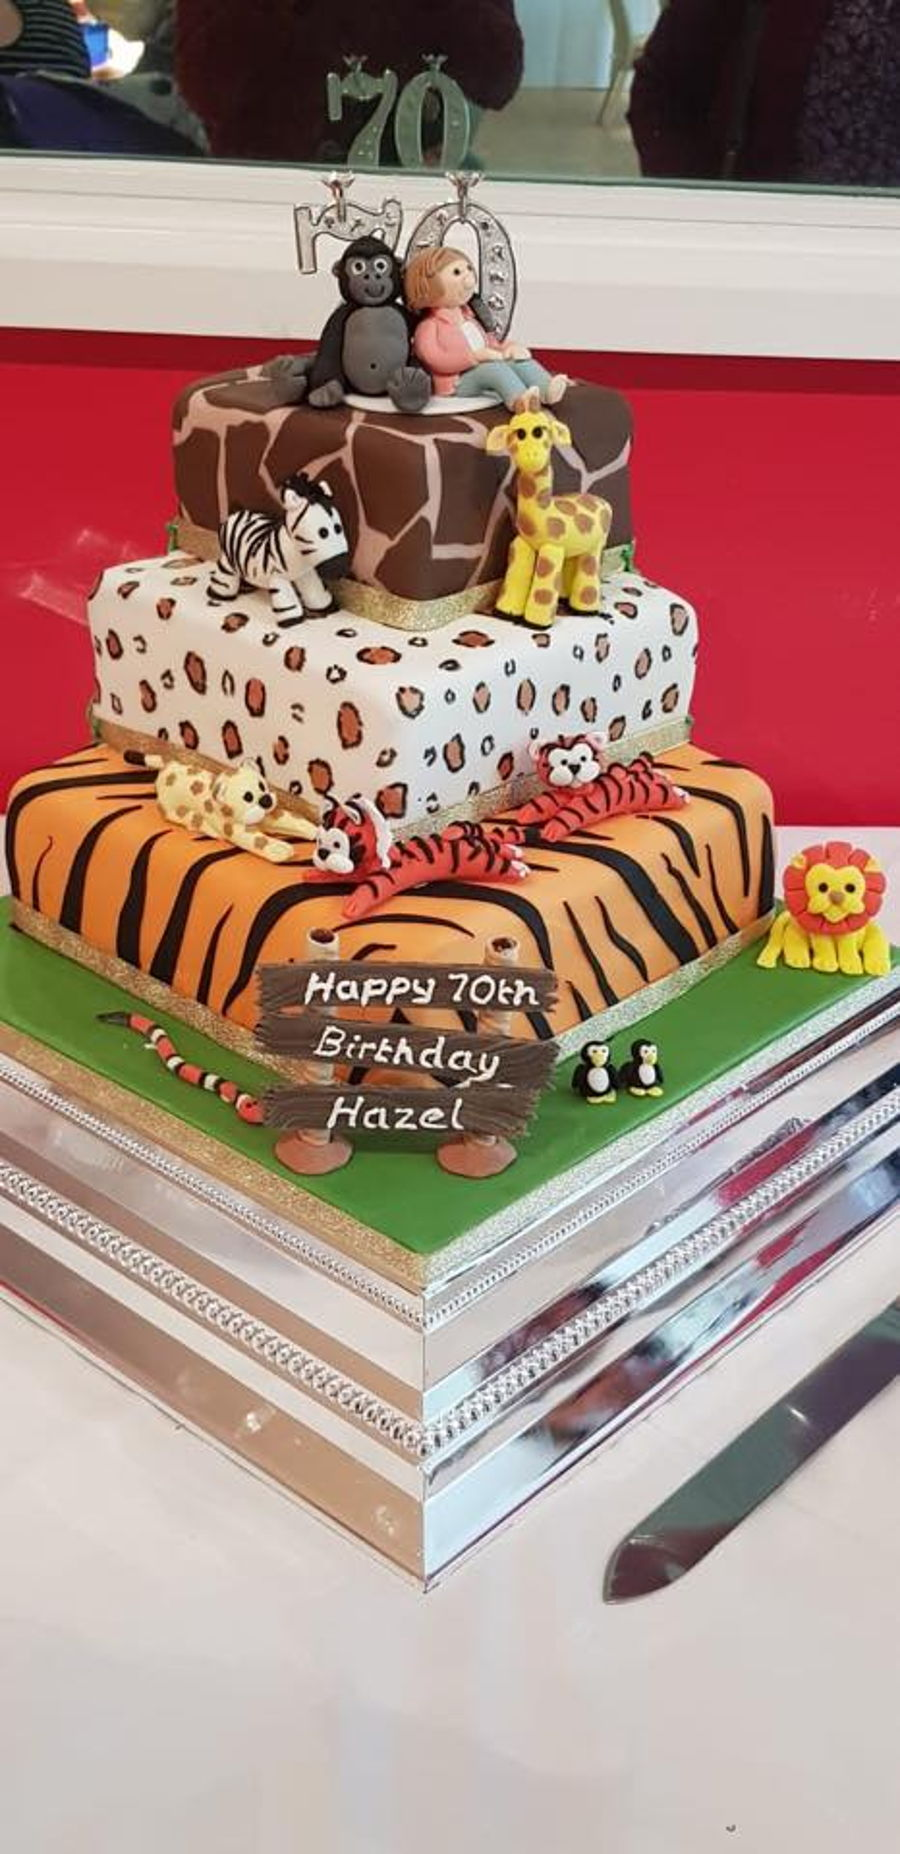 Zoo Themed Birthday Cake On Central